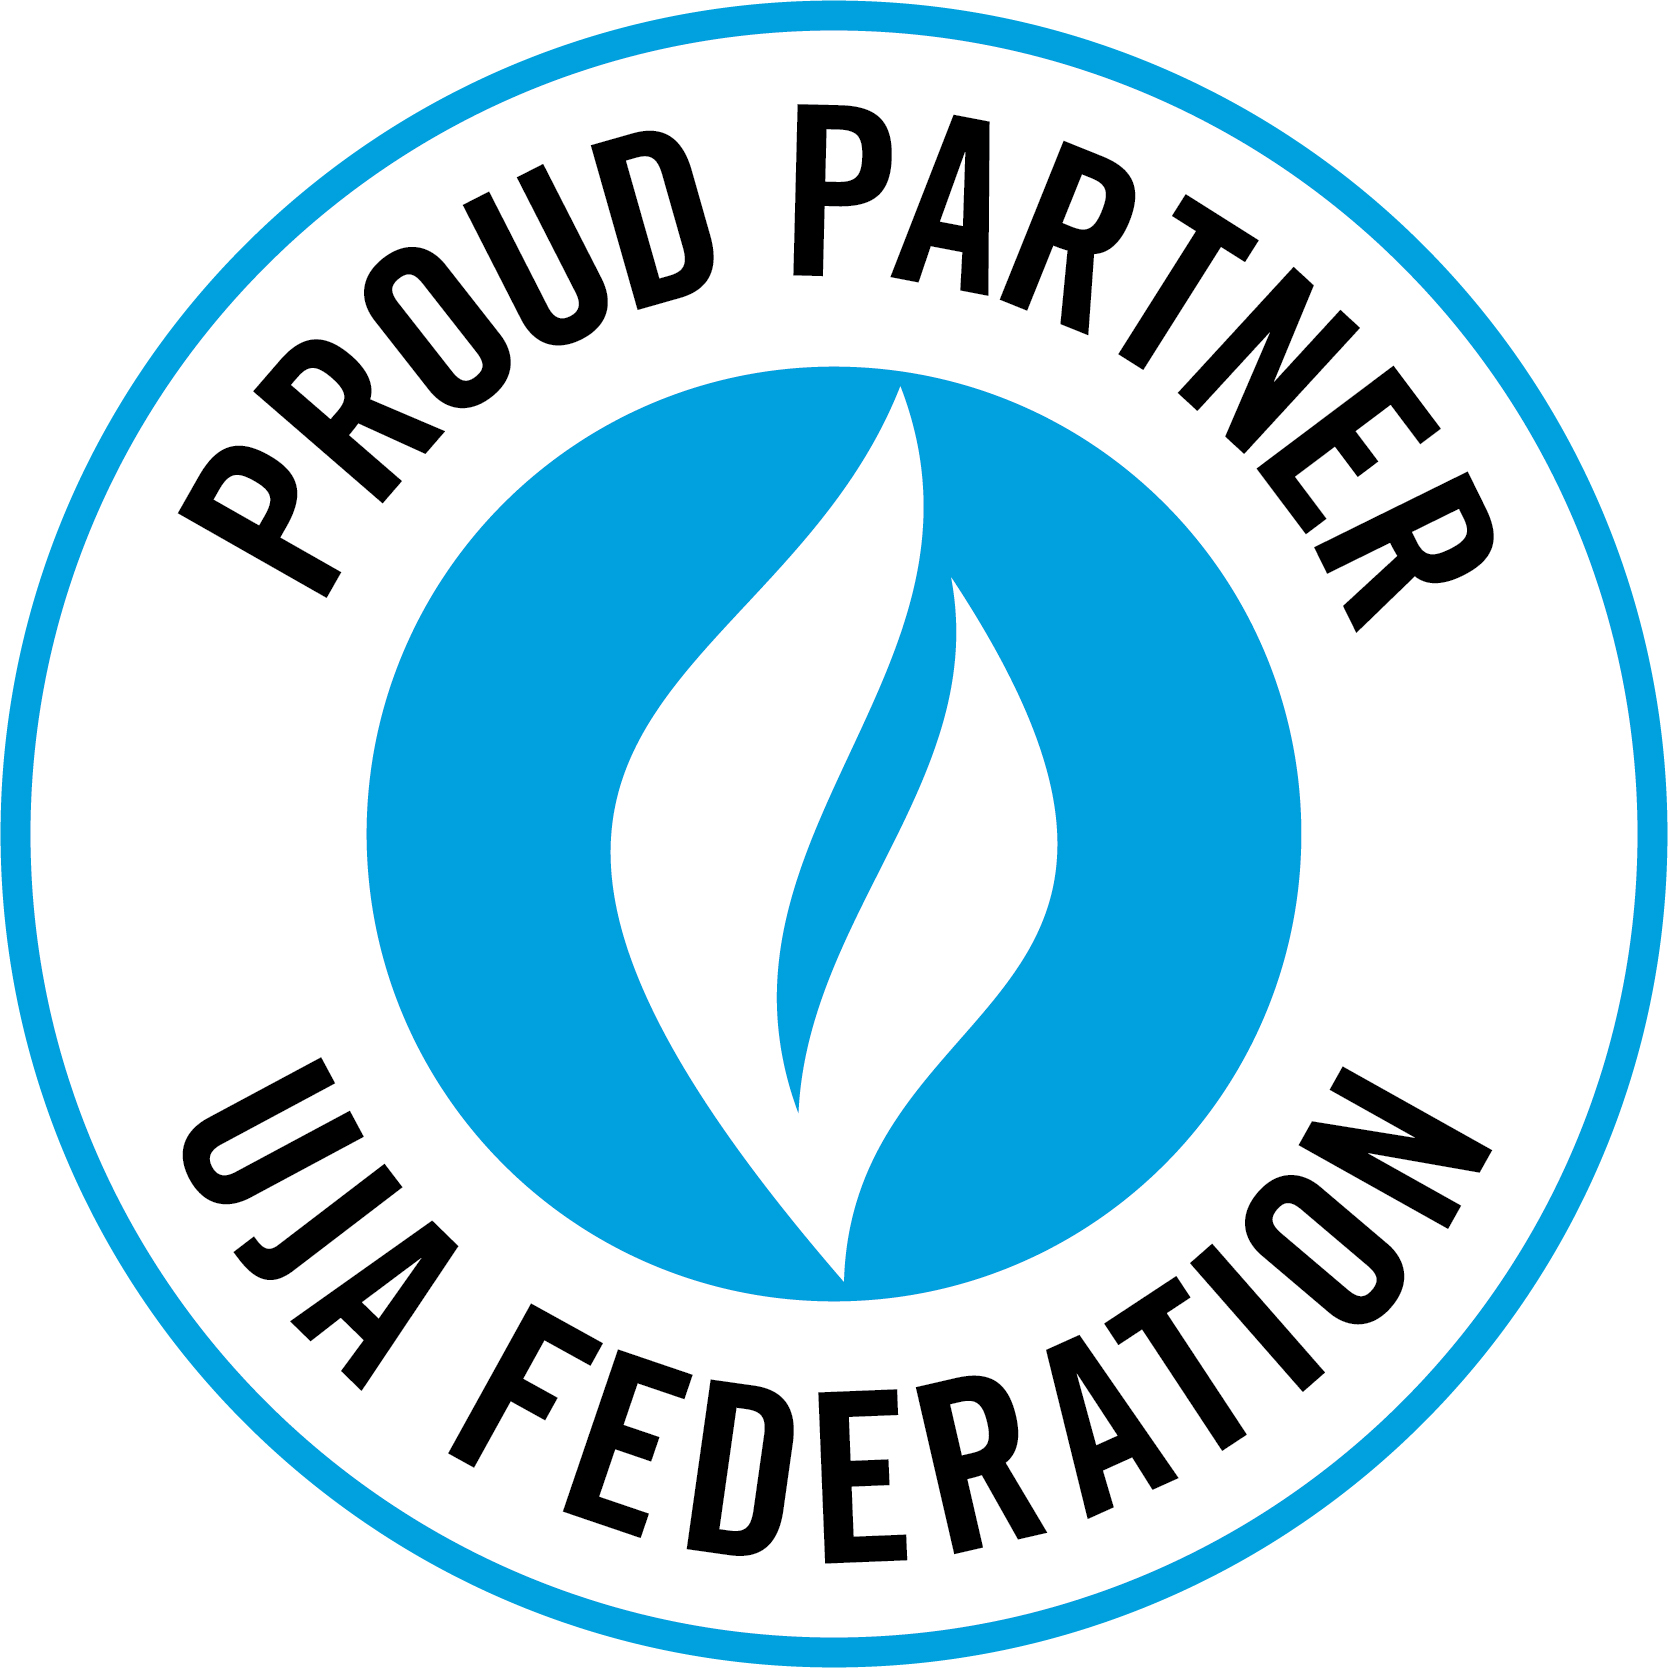 UJA Federation of New York